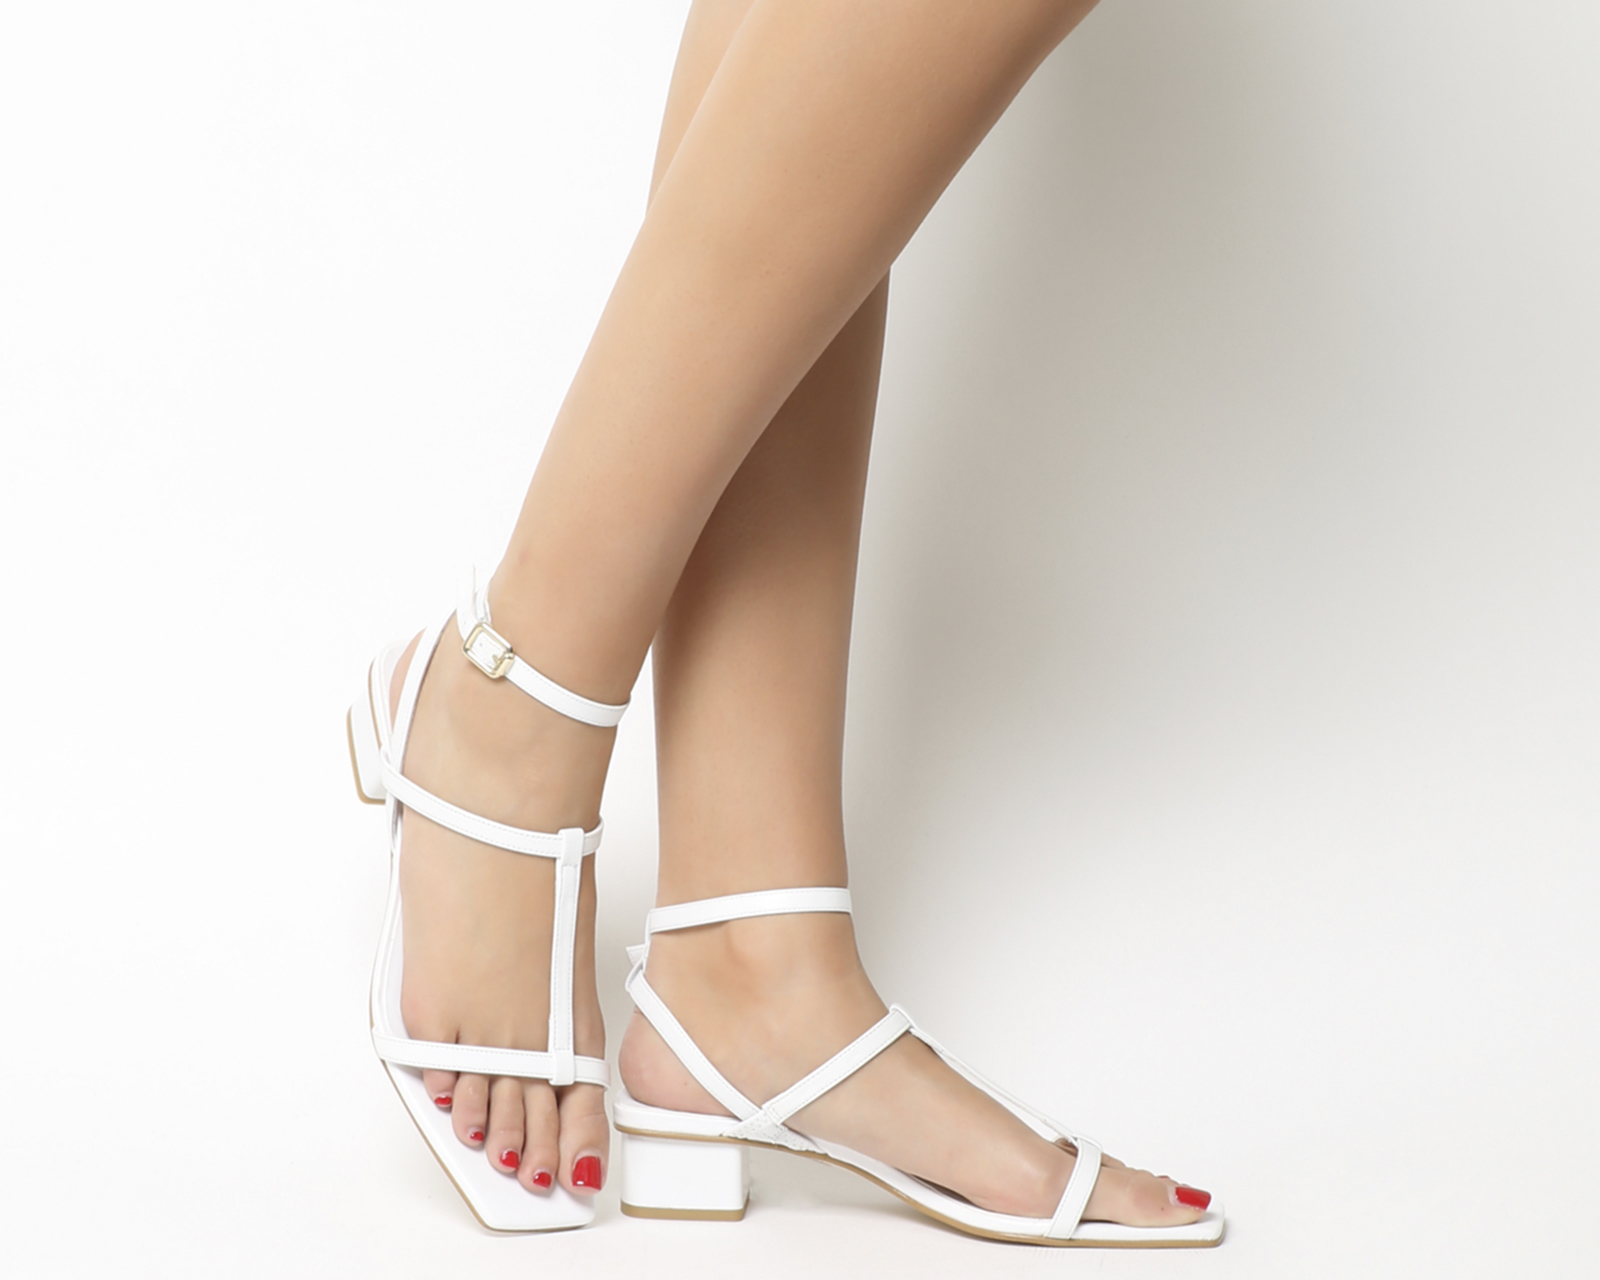 f7ca376efd6 Sentinel Womens Office Miley Square Toe Strappy Sandals White Leather Heels